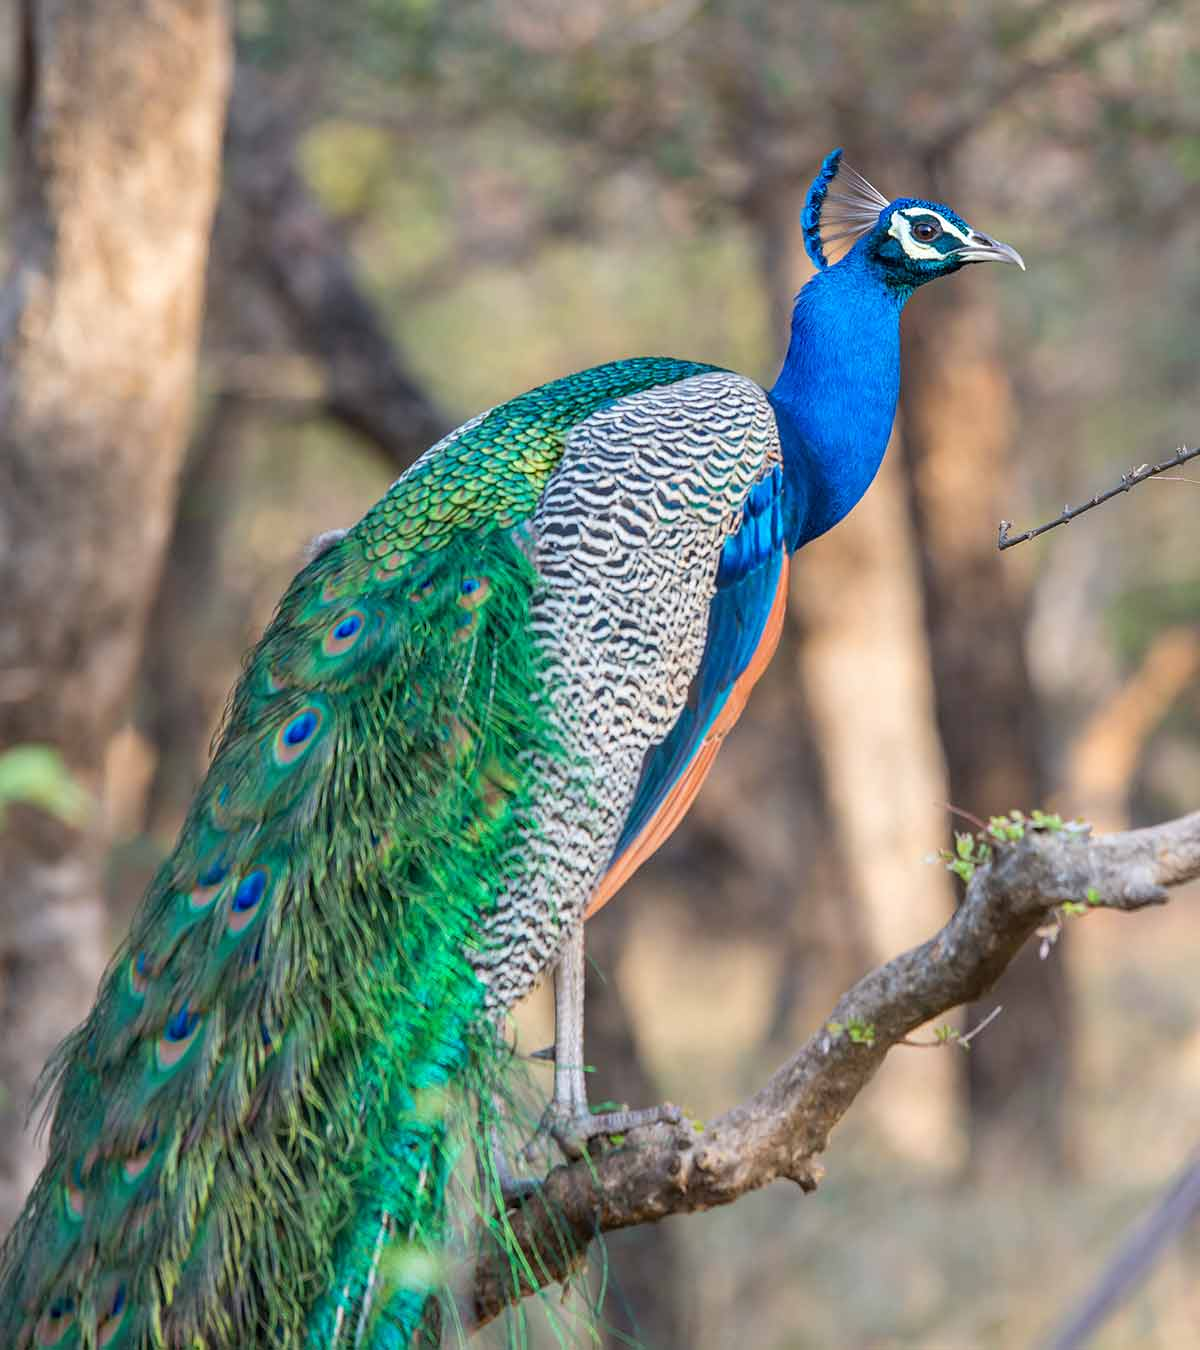 Indian National Parks: 7 Indian National Parks You Should Visit On Your Next Vacation